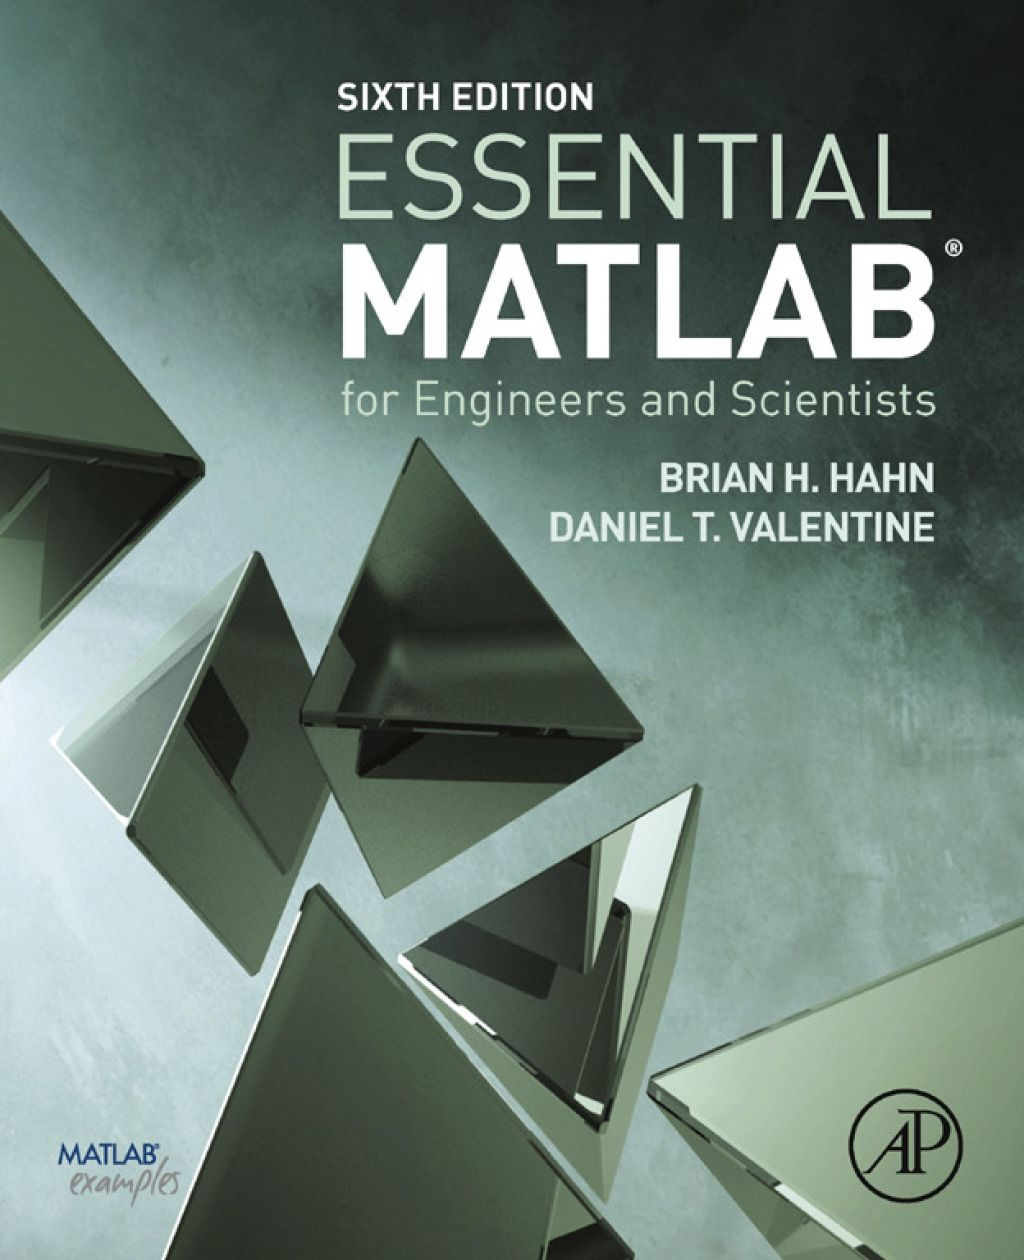 5bdd37b97844e00a419fee4572bbace4 - Matlab And Its Applications In Engineering Free Ebook